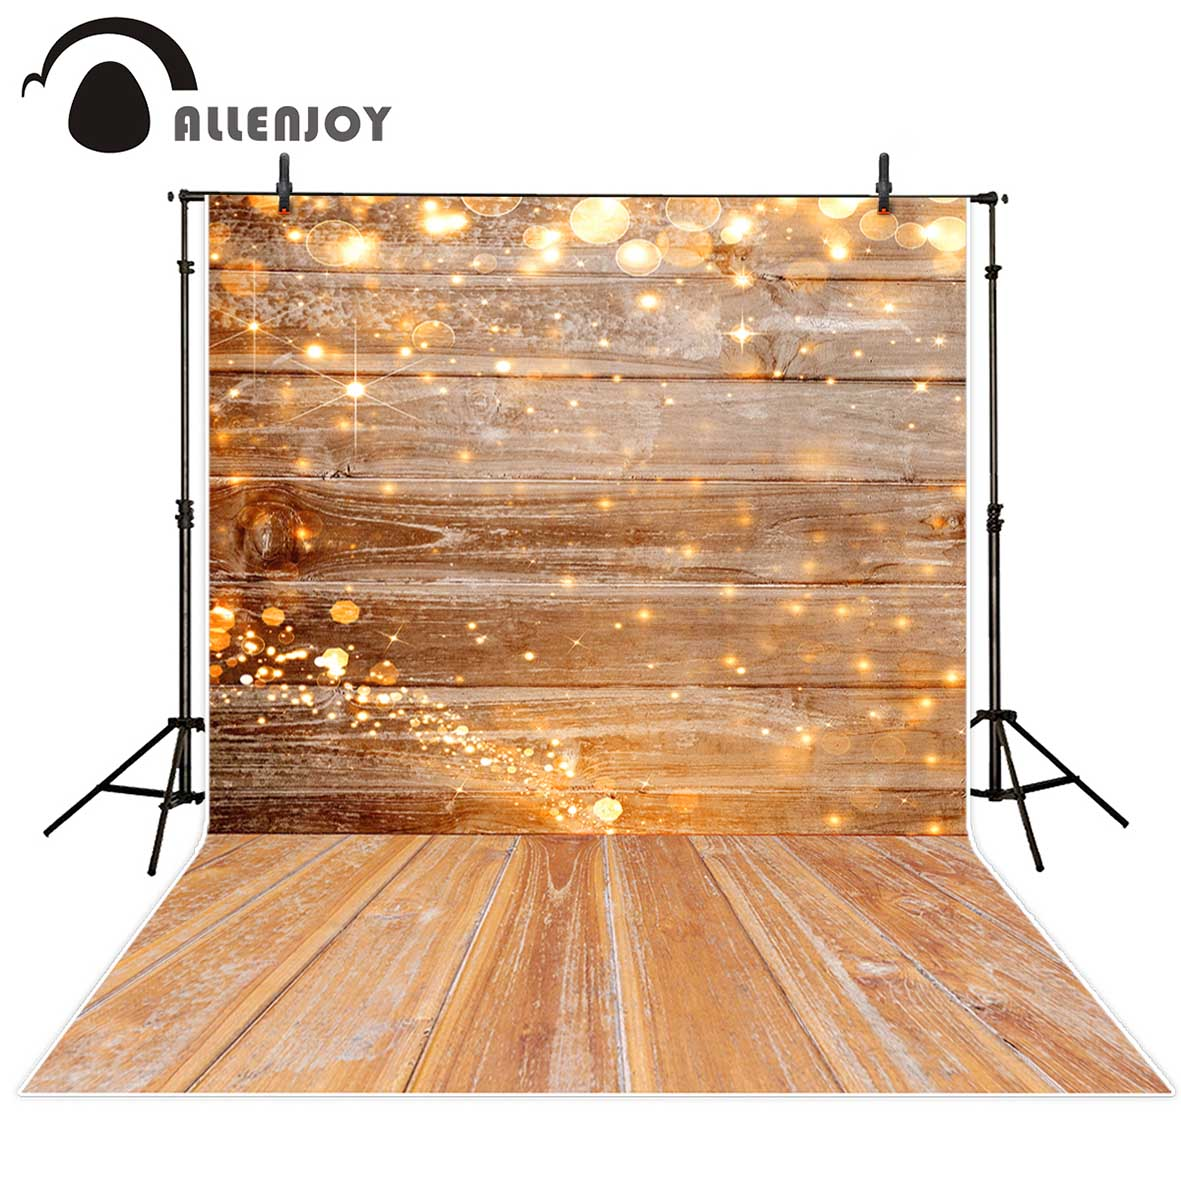 Allenjoy photography backdrop yellow halo wood christmas decor background photobooth photo studio decoration photo shoot allenjoy photo backdrops blue vintage wood wall photo studio props photobooth photocall fantasy background newborn